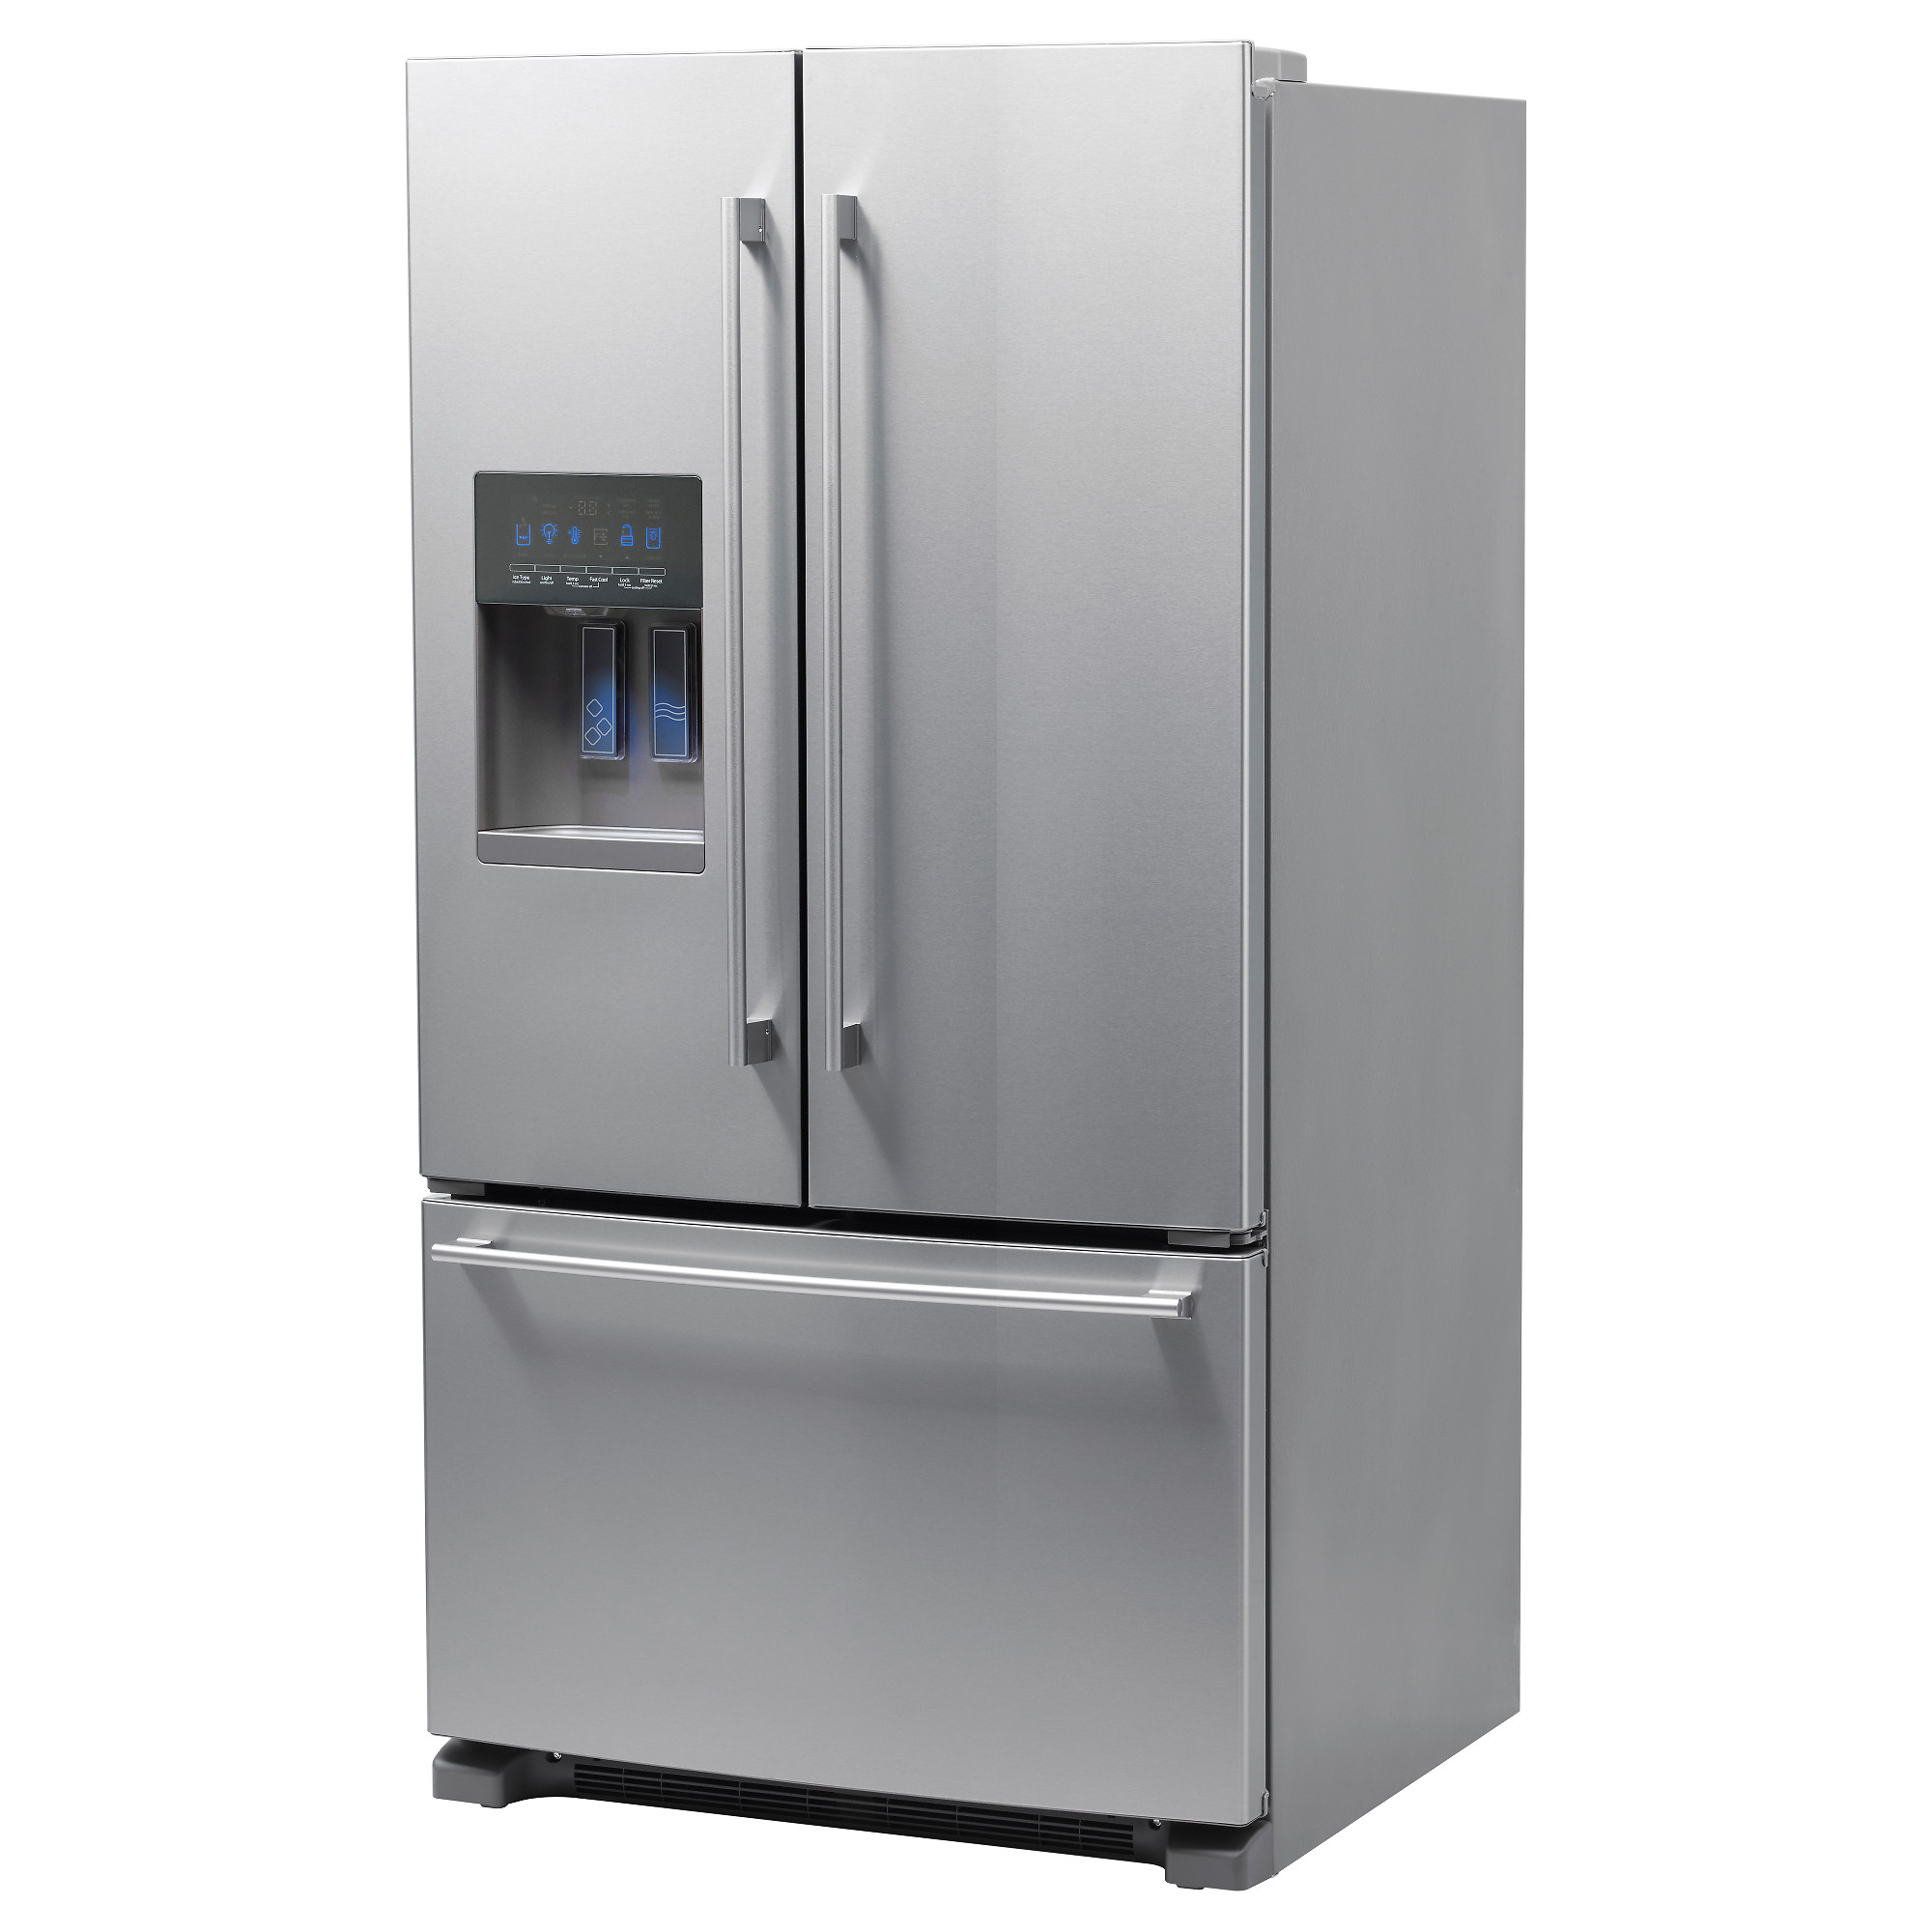 Side by side refrigerator 30 inch width - Nutid French Door Refrigerator Stainless Steel Width 35 5 8 Depth